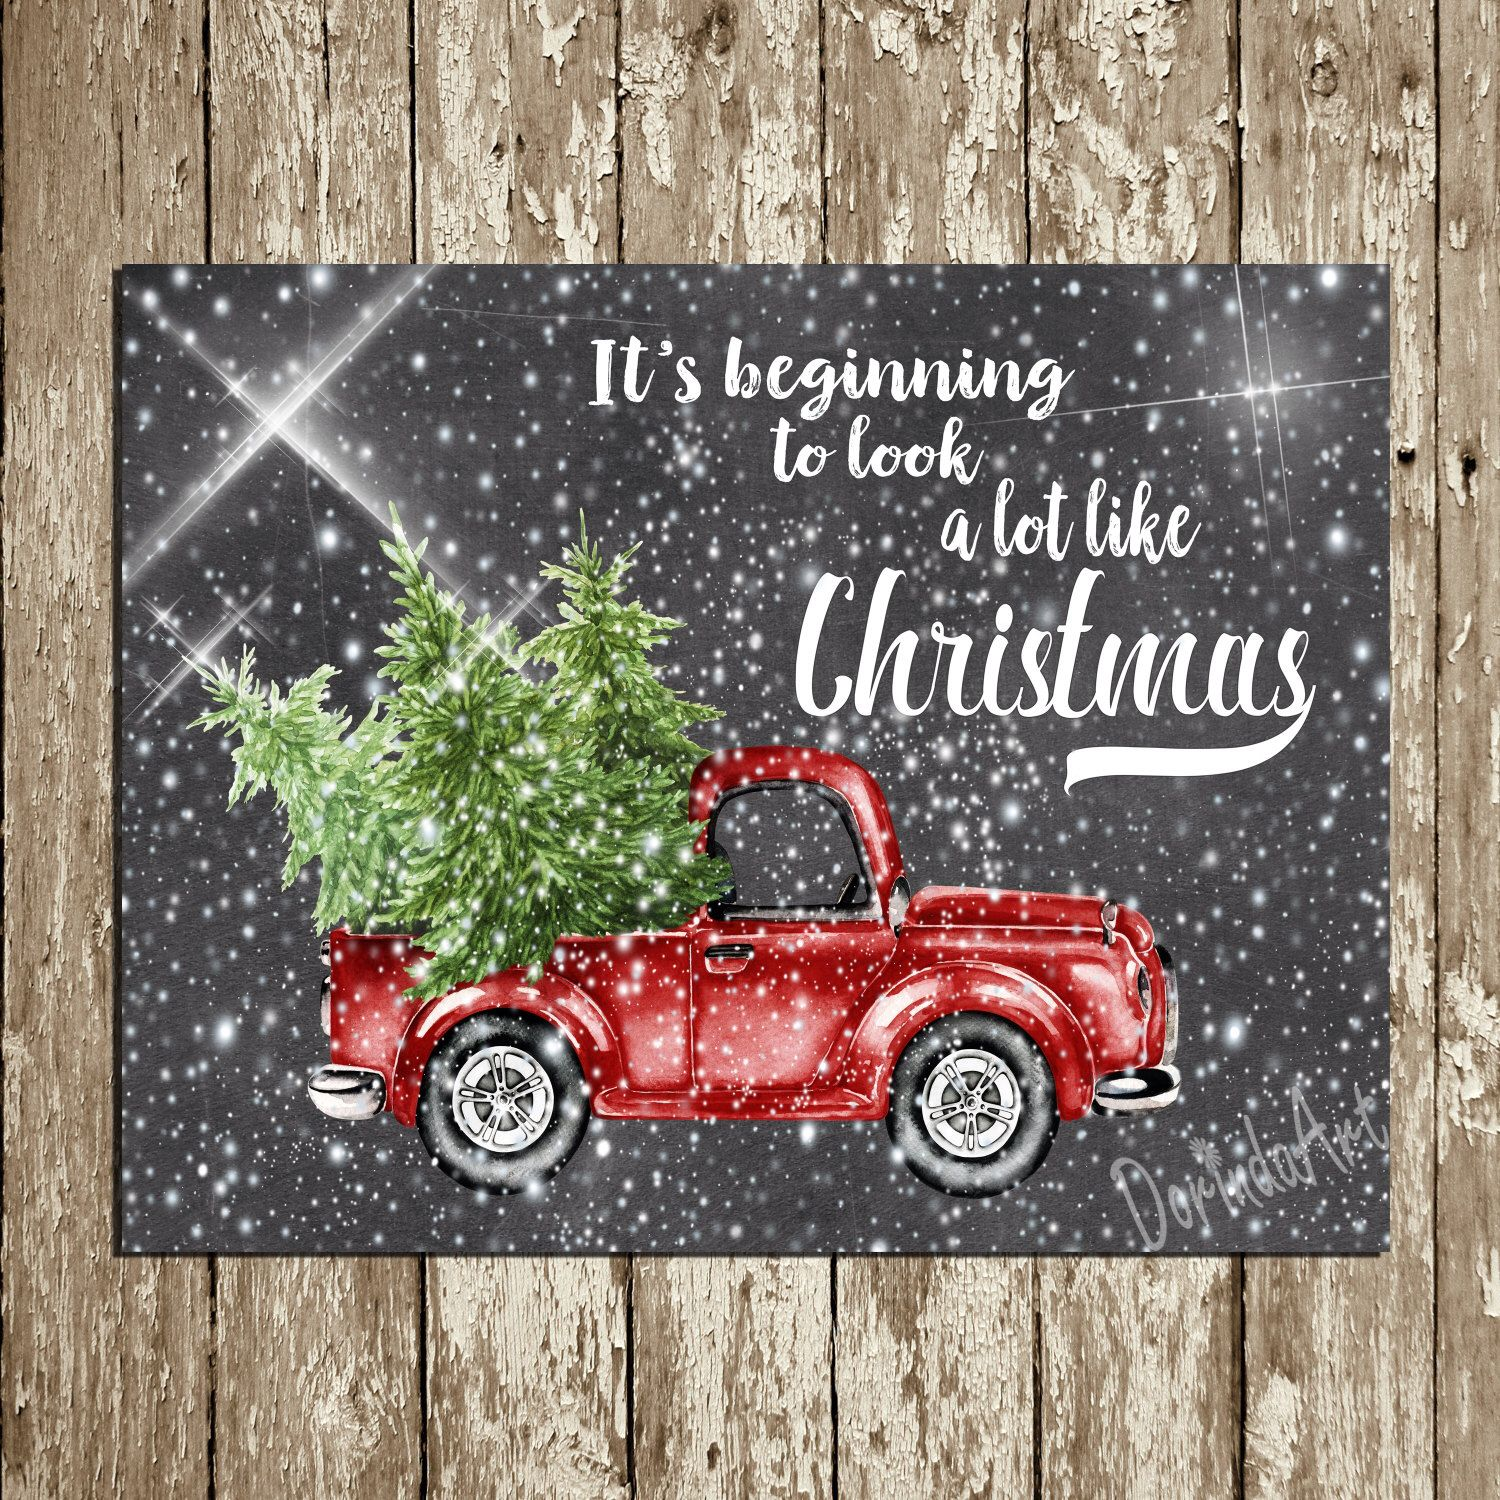 Christmas Printable Wall Decor Red Truck Chalkboard Christmas Print Tree Chrismas Decor Wall Art Christmas Red Truck Christmas Chalkboard Chrismas Decorations